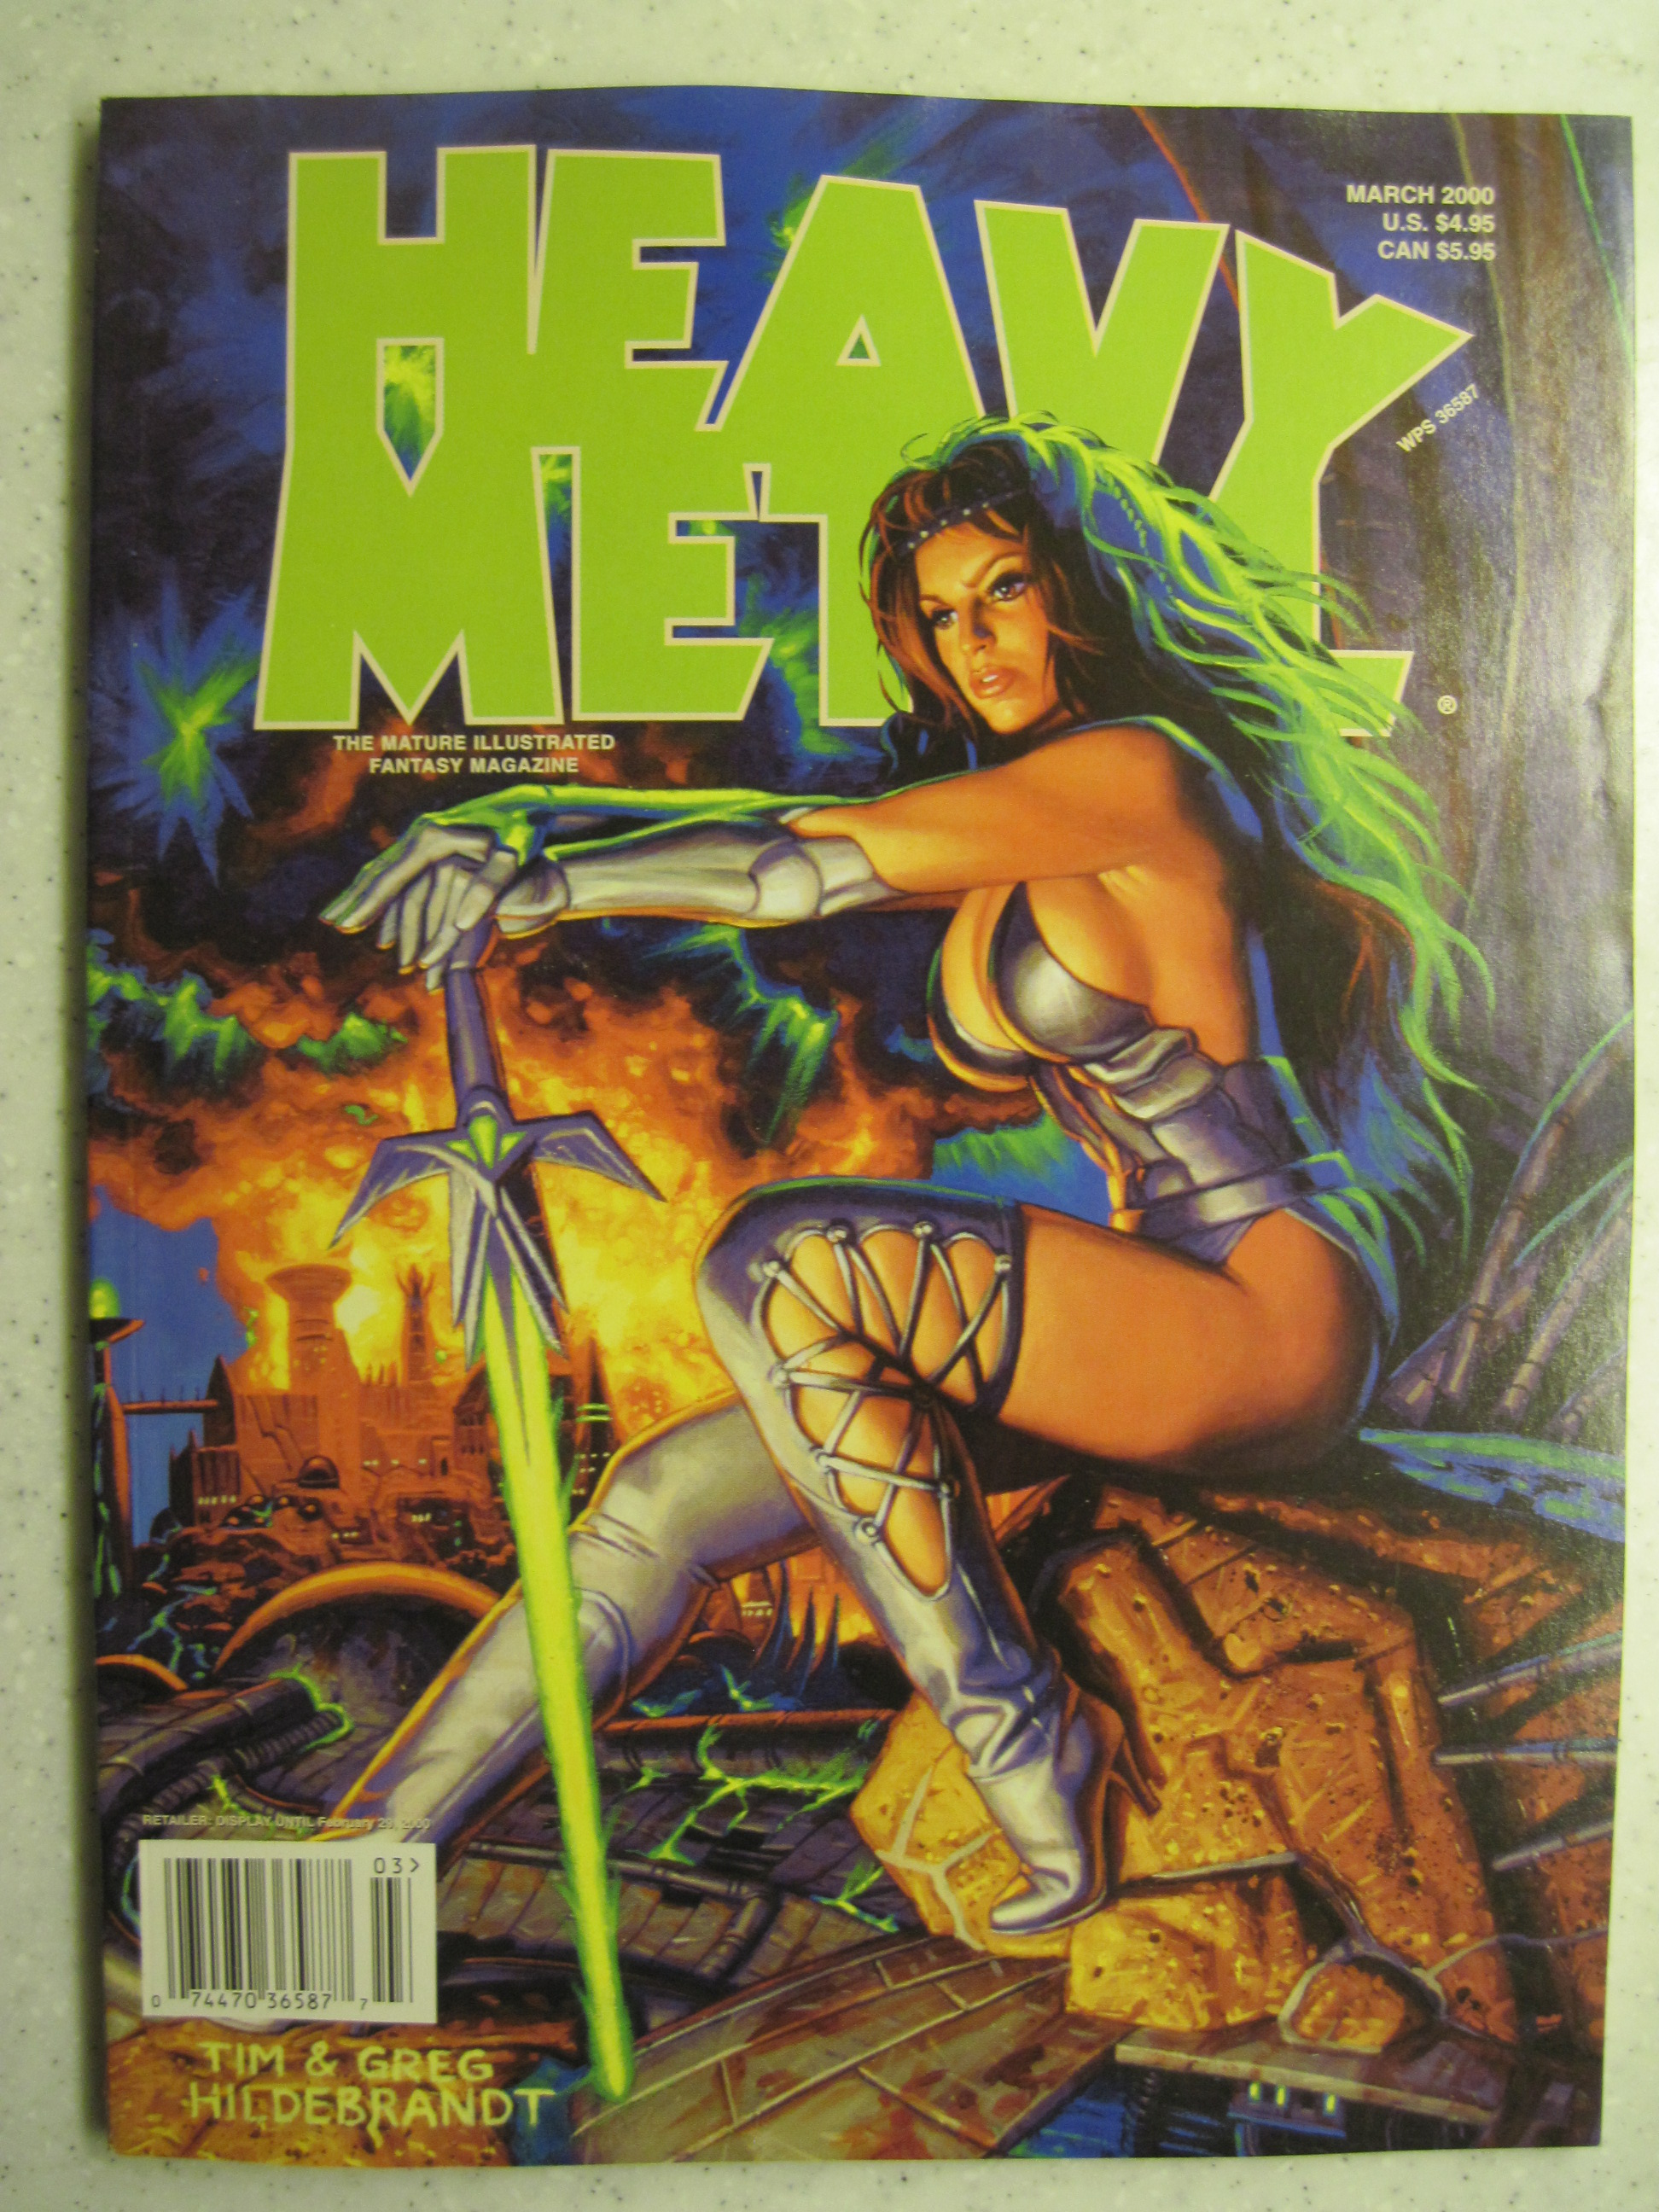 HEAVY METAL MAGAZINE MAR 2000 VF